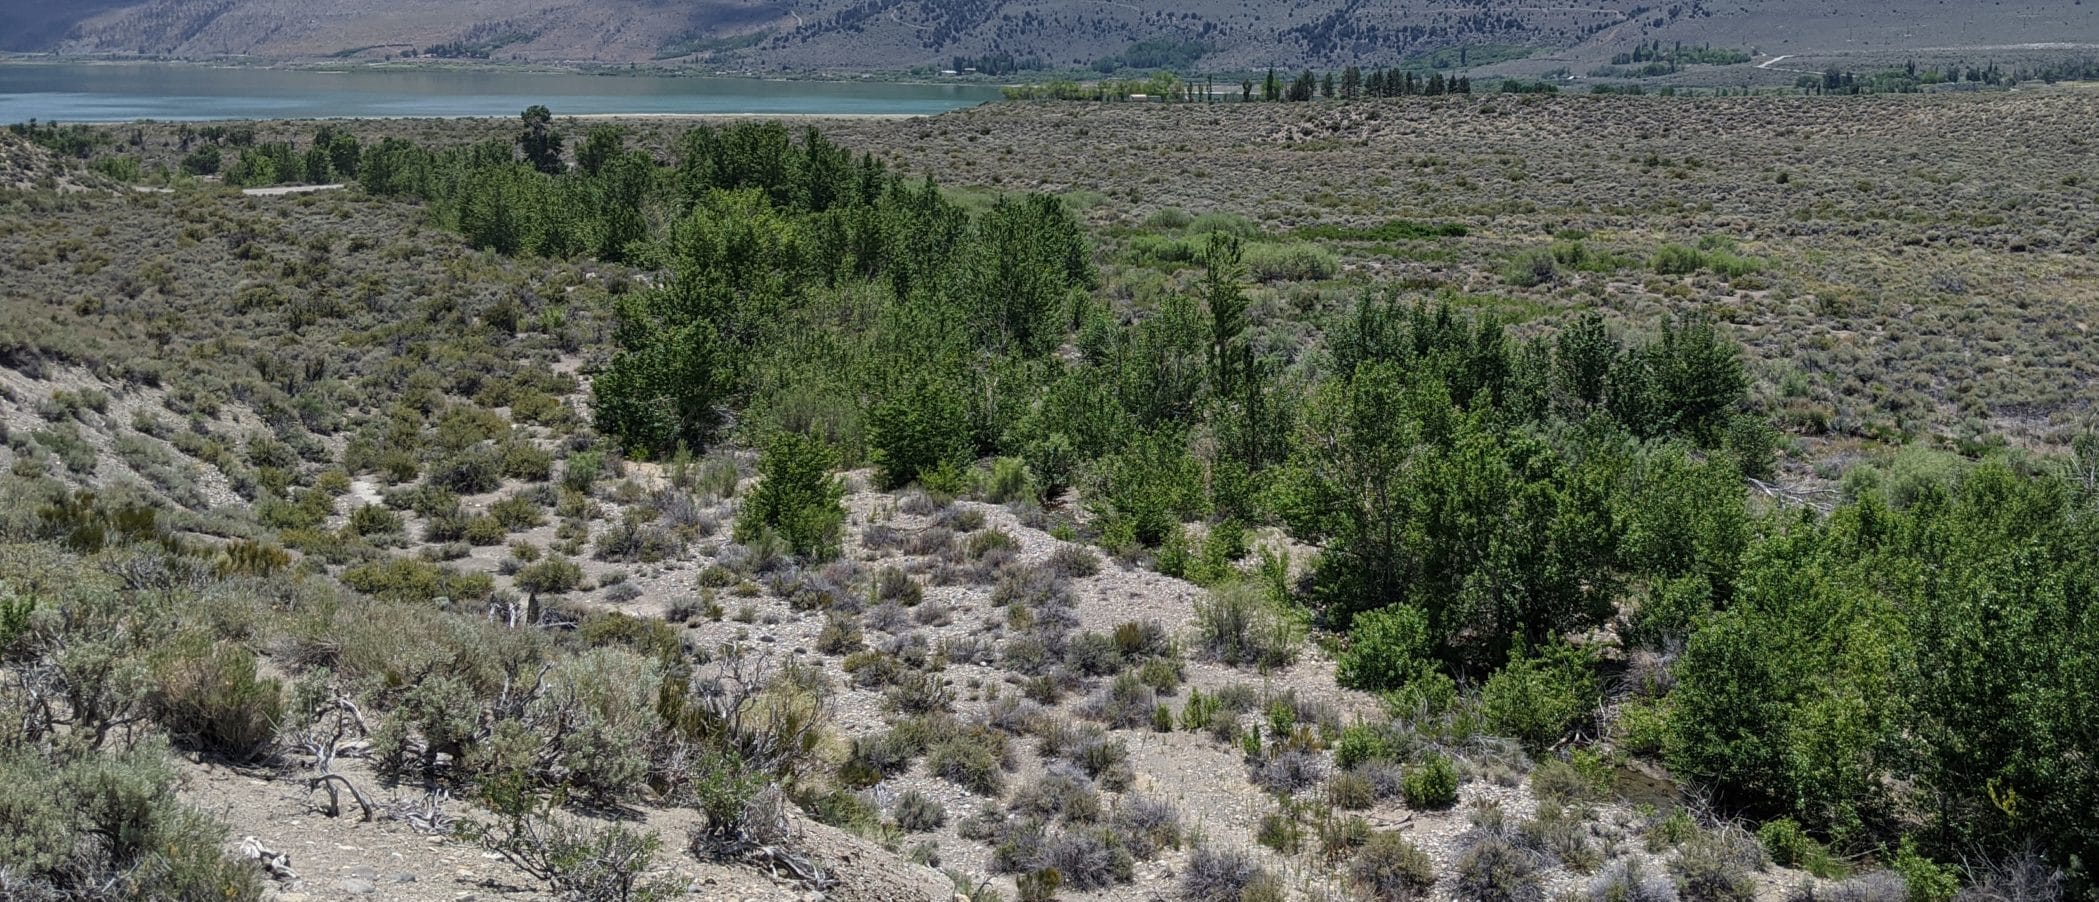 View of Mill Creek from a bluff overlooking a line of cottonwood and willow trees as it meanders through the desert toward Mono Lake.